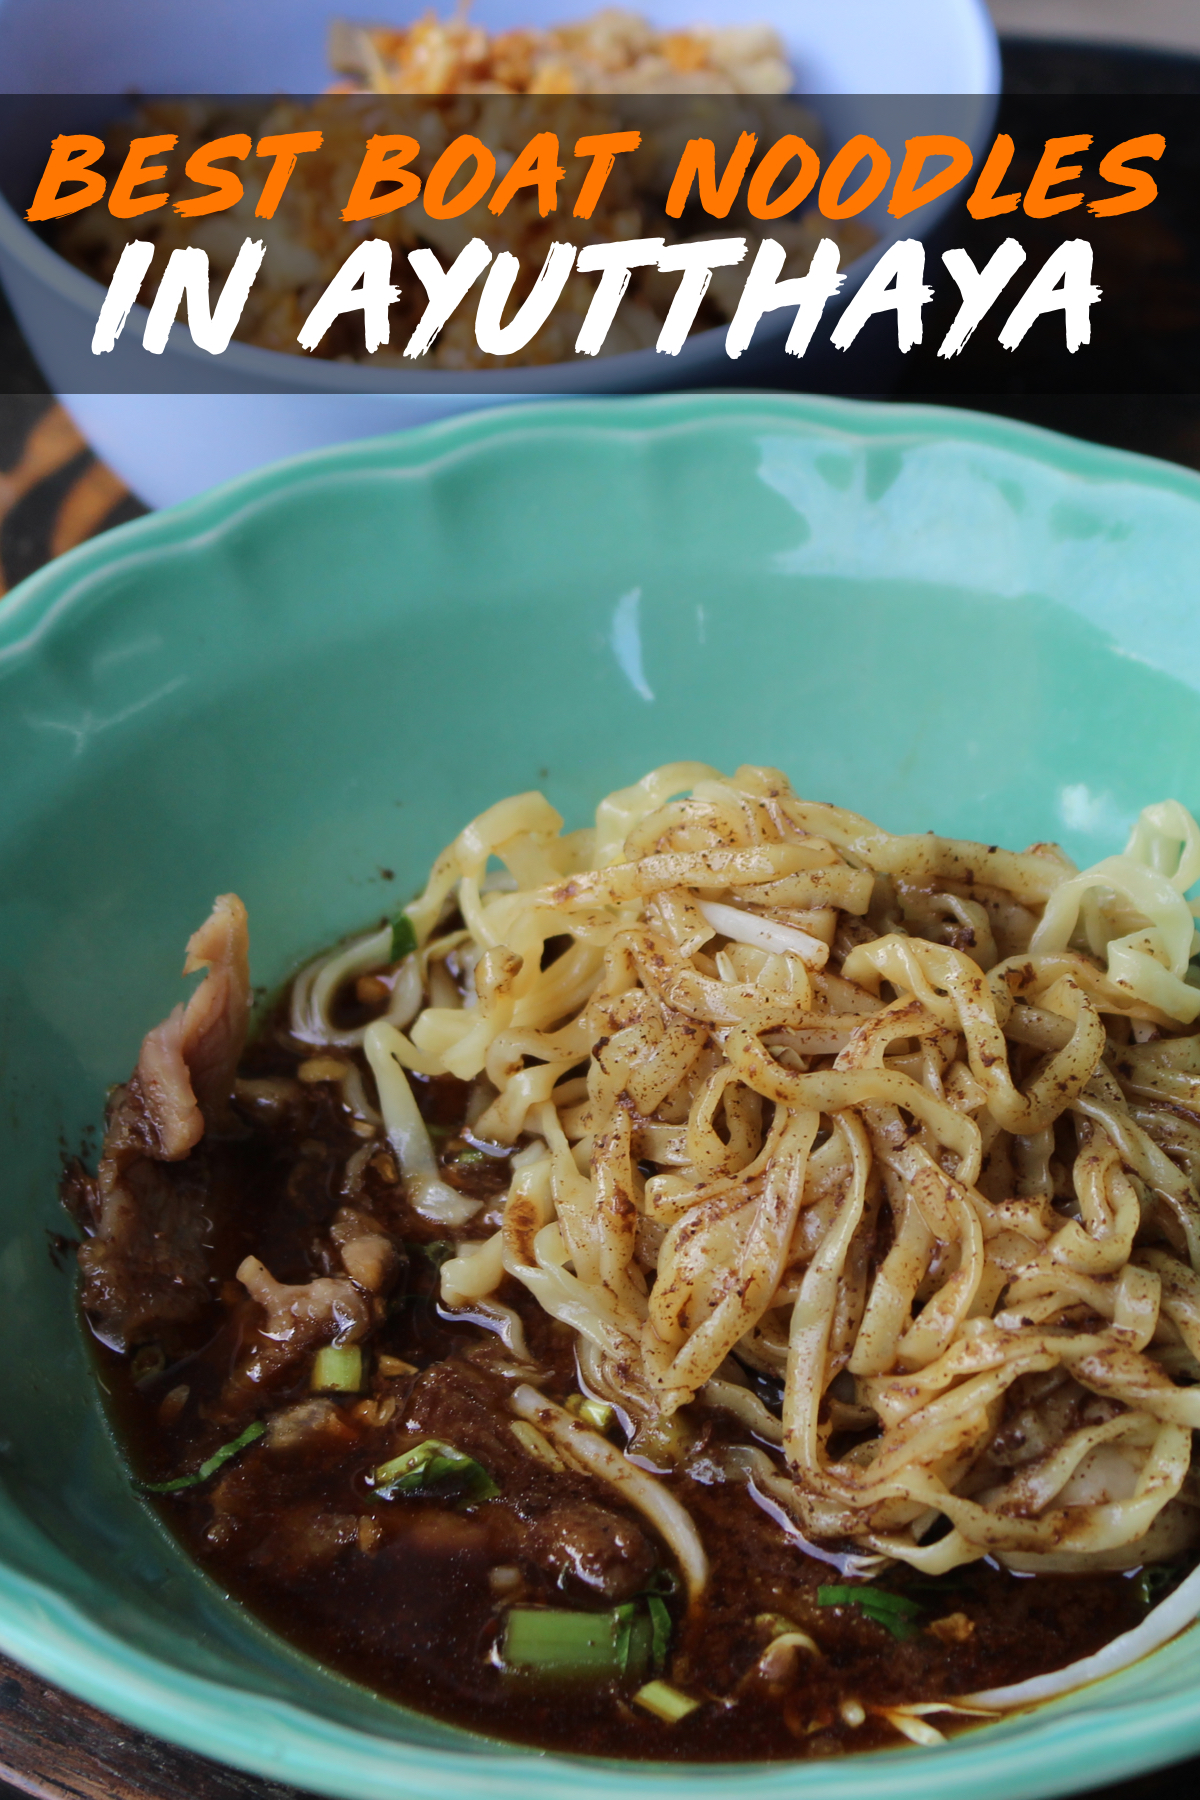 The Best Boat Noodles in Ayutthaya